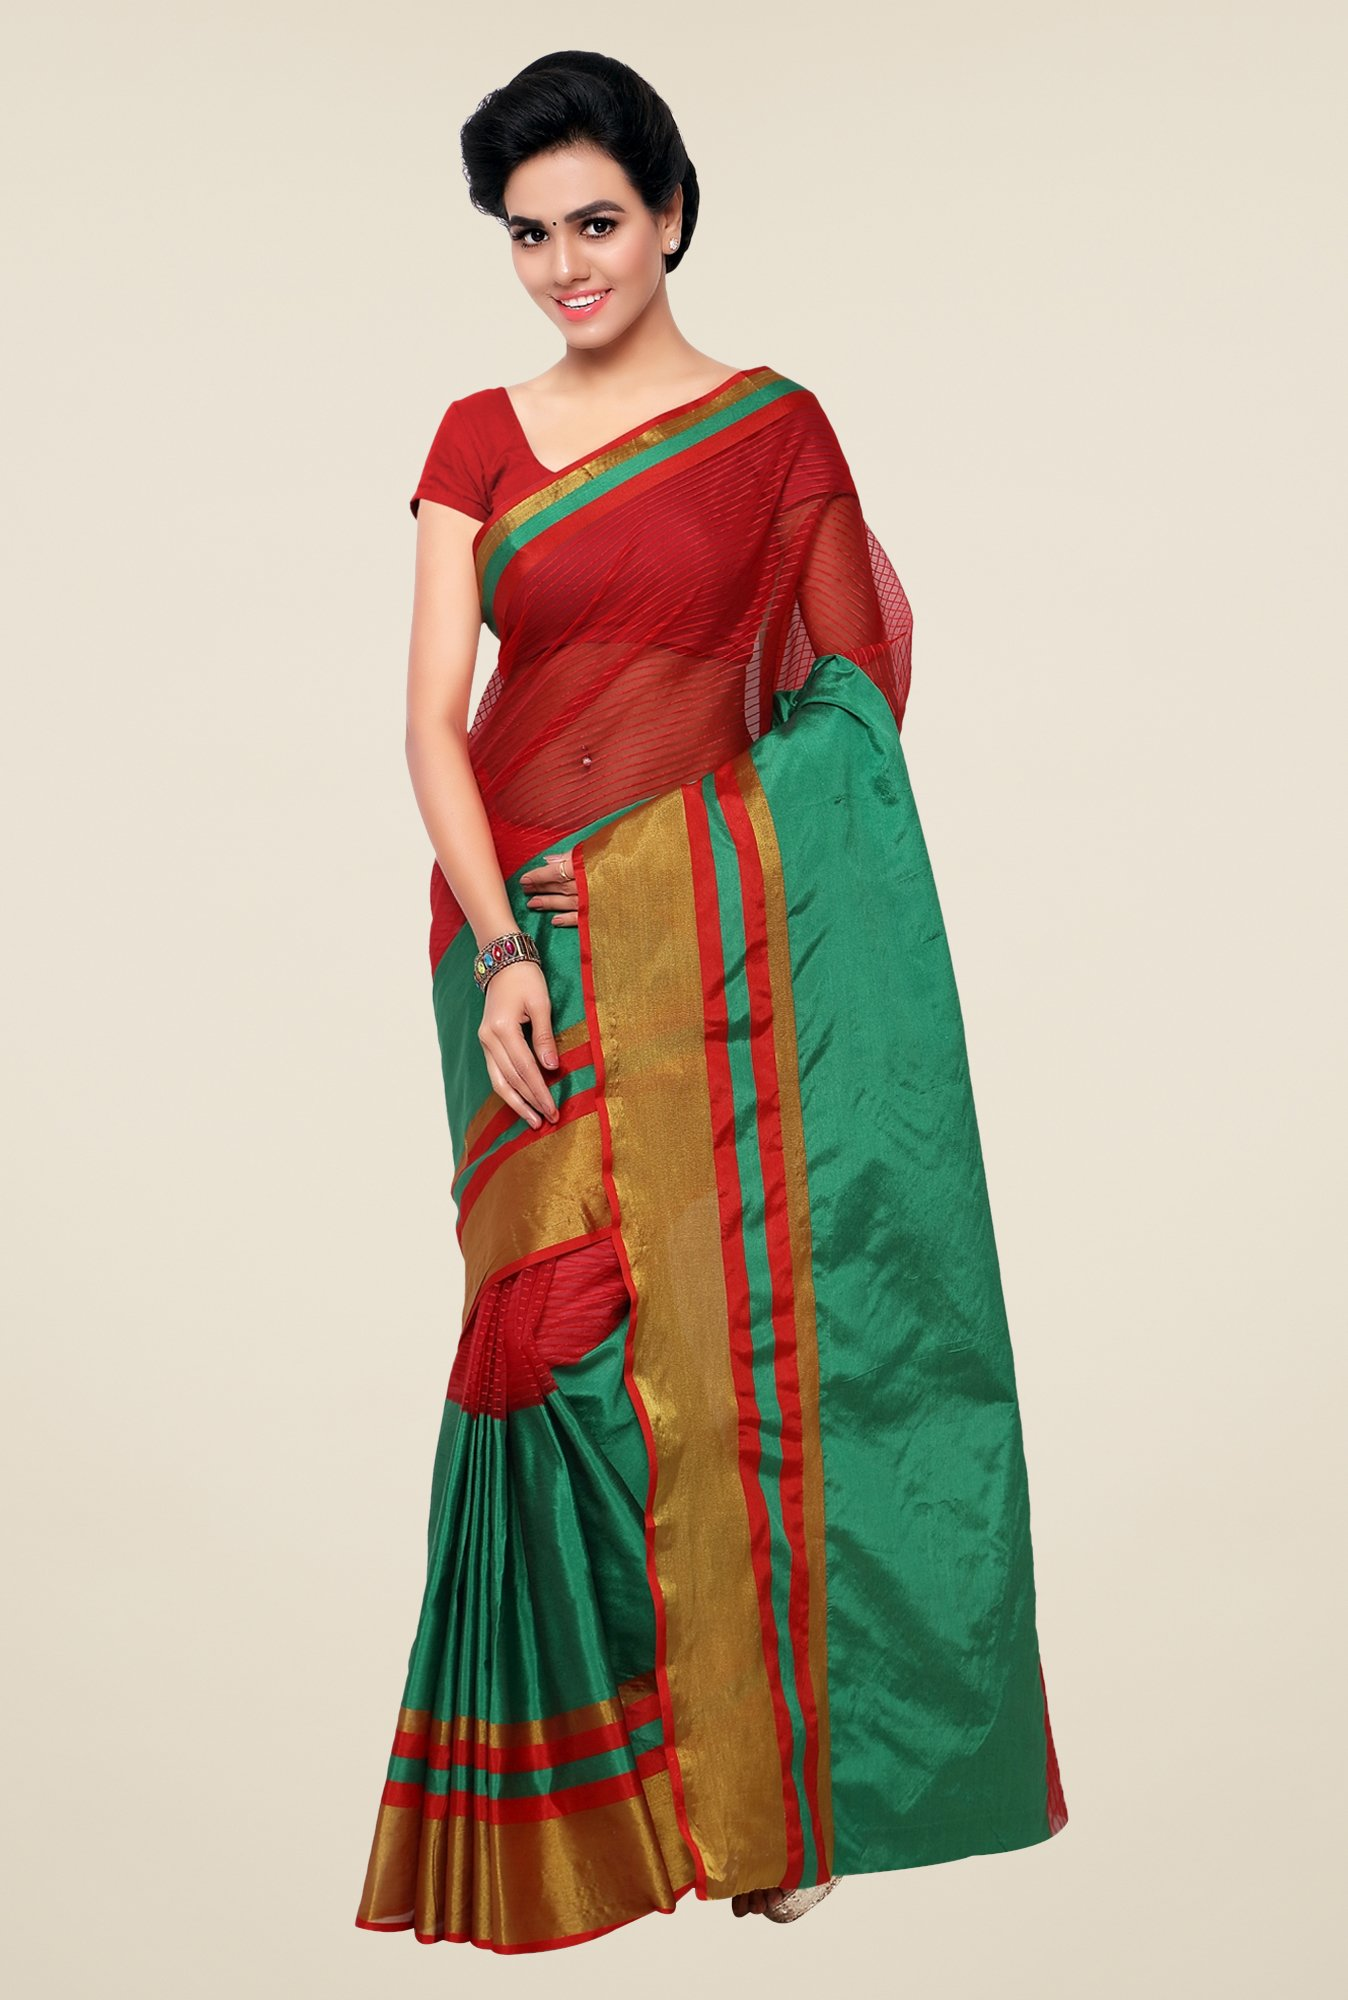 Triveni Green & Red Striped Silk Saree